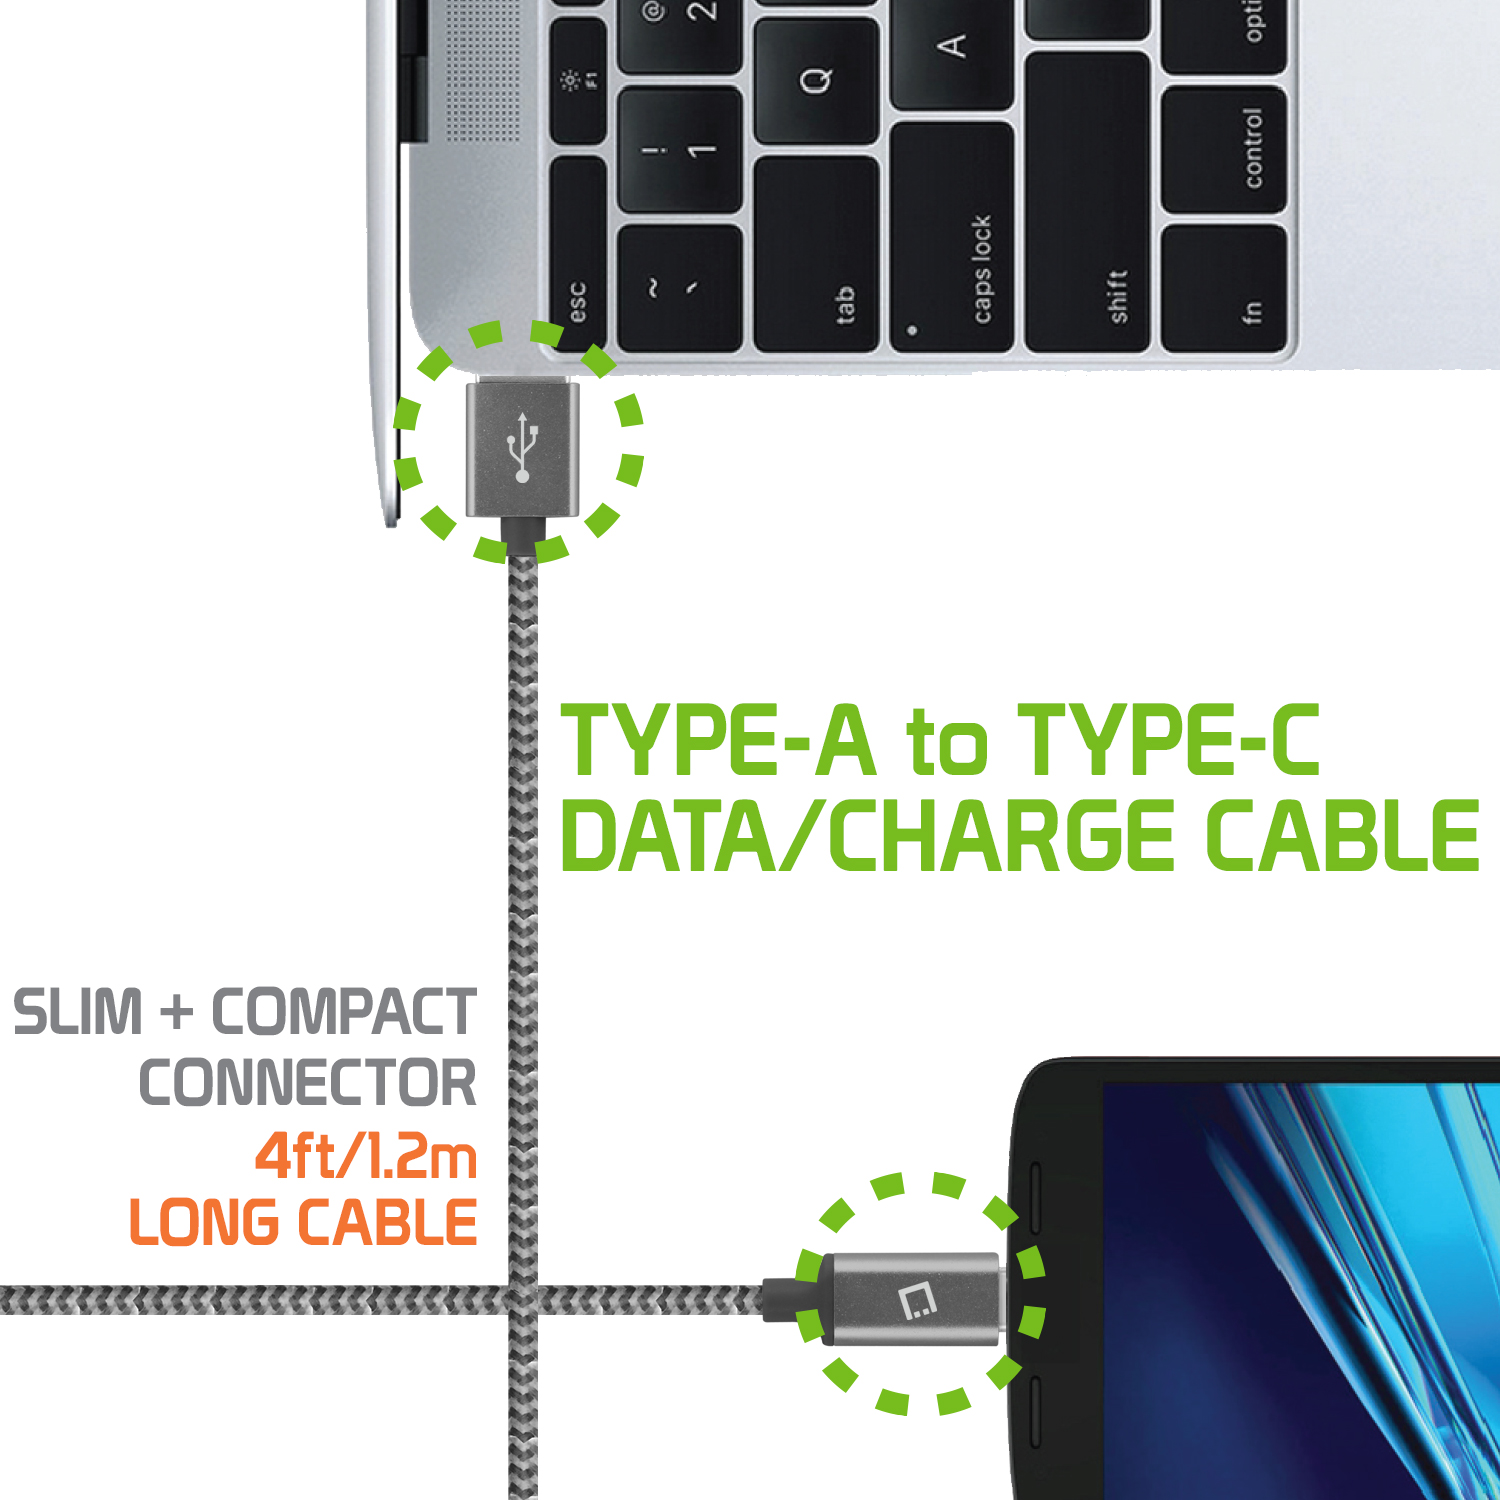 LG Stylo 4 USB Type-C To Type-A Braided Data Power Cable Black 4ft Round